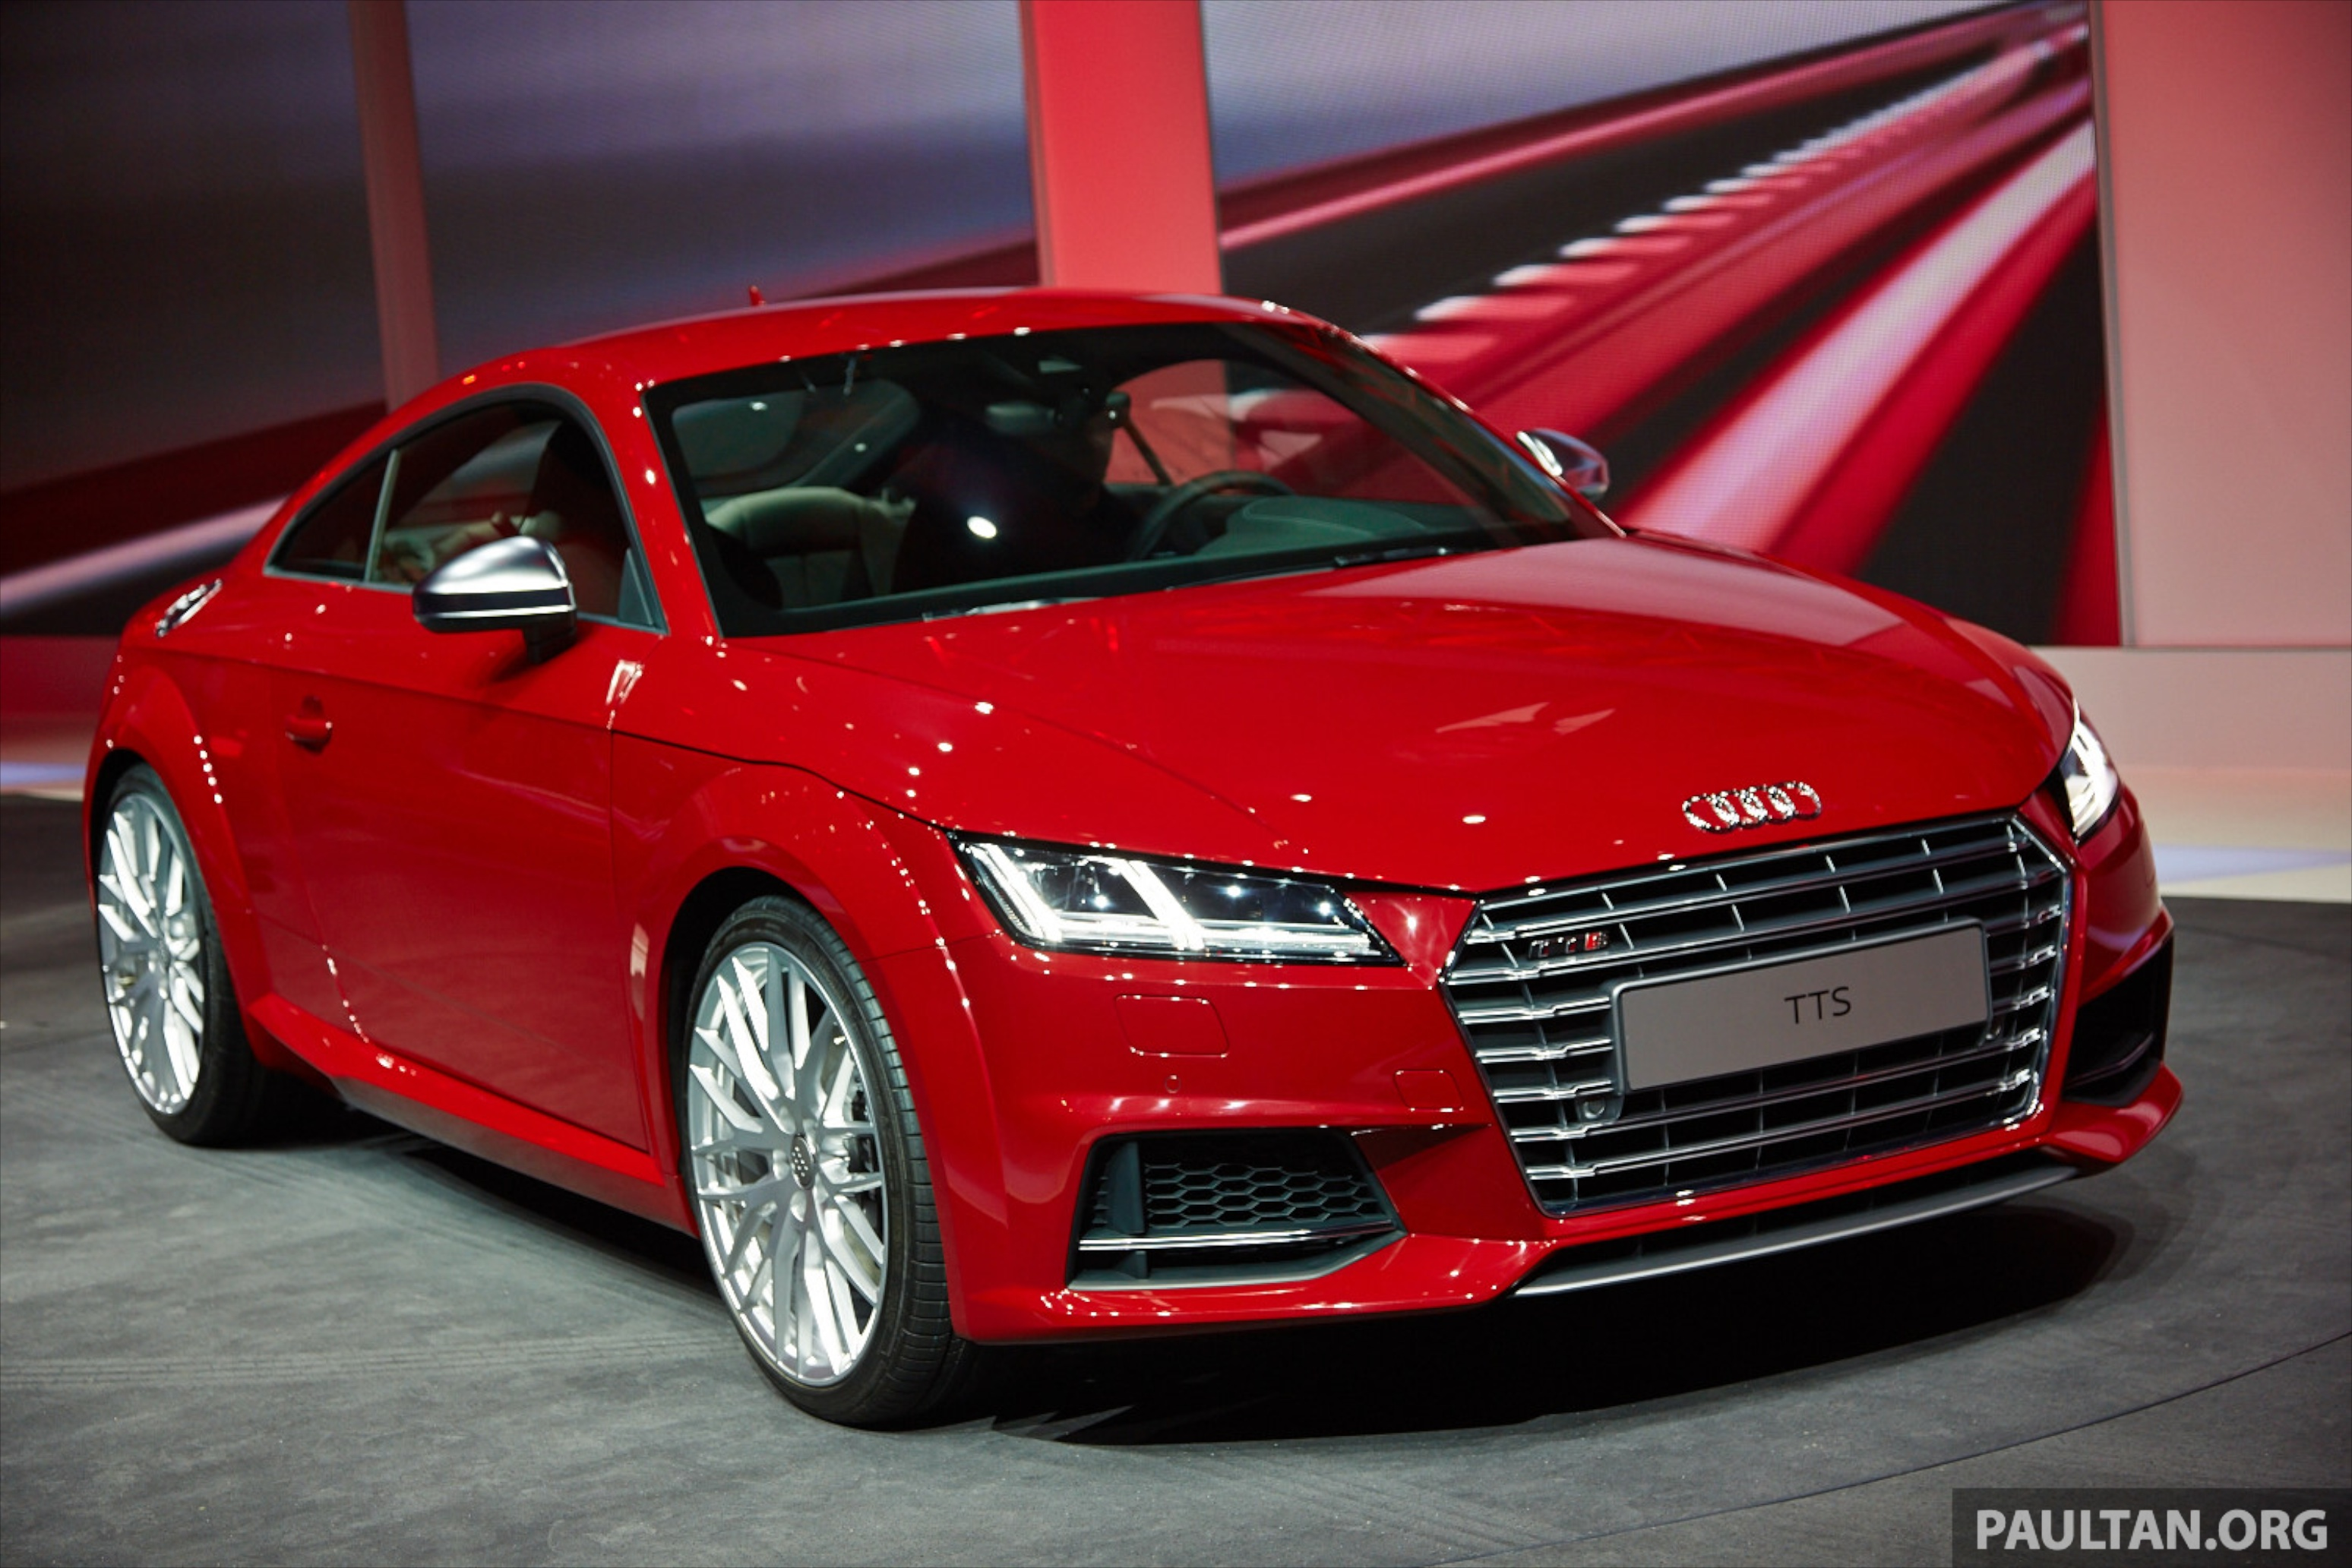 new audi tt and tts make their debut at geneva paul tan image 232413. Black Bedroom Furniture Sets. Home Design Ideas